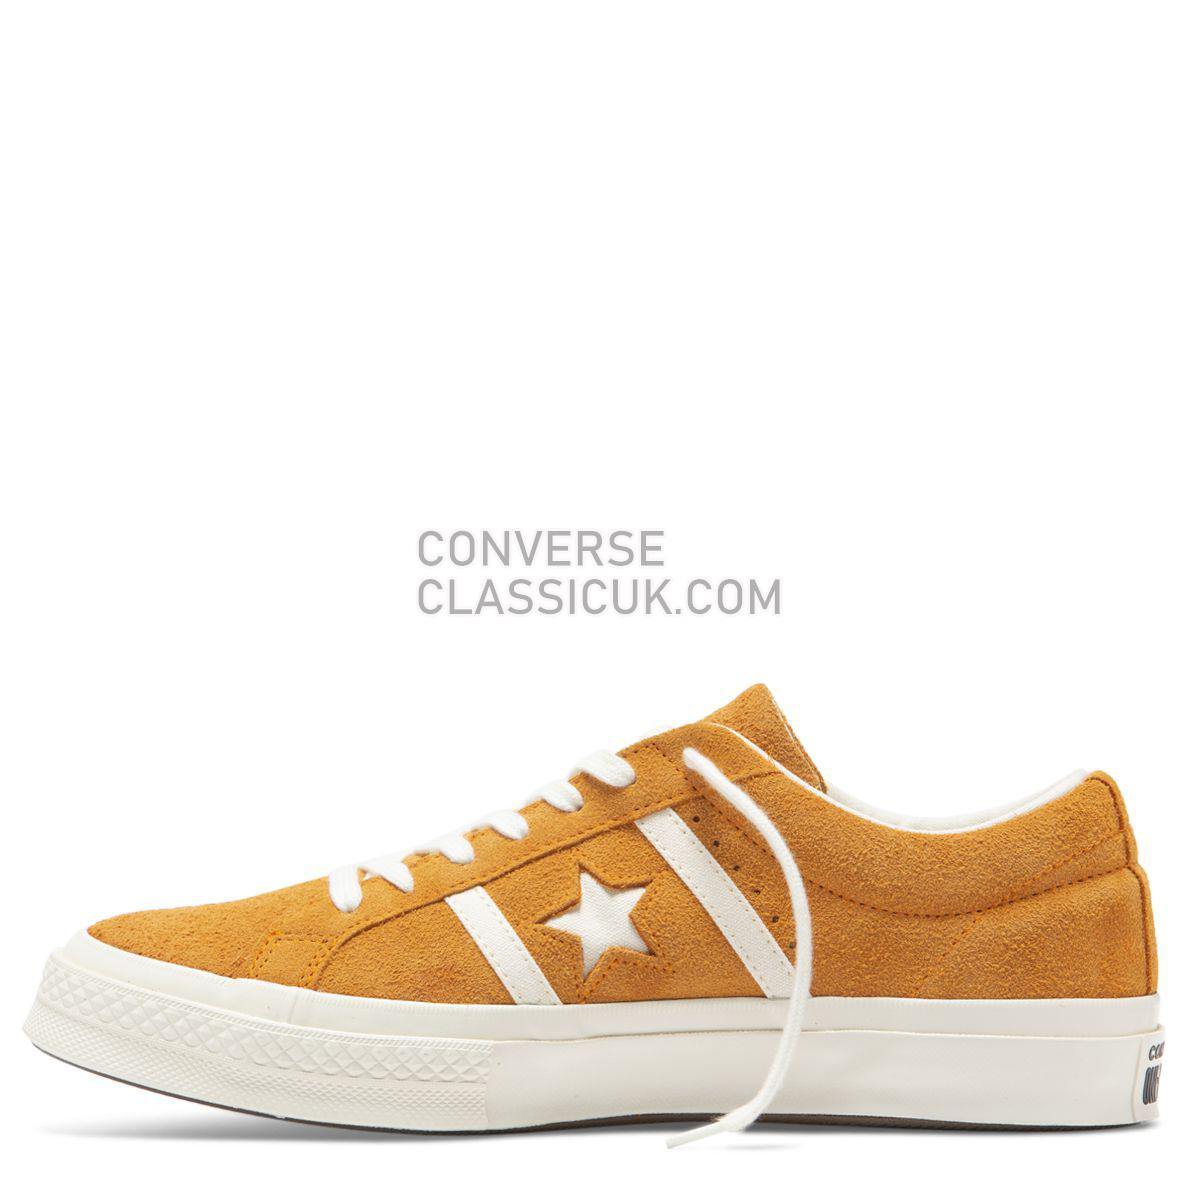 Converse One Star Academy Time Capsule Low Top Orange Rind Mens Womens Unisex 165023 Orange Rind/Egret/Egret Shoes